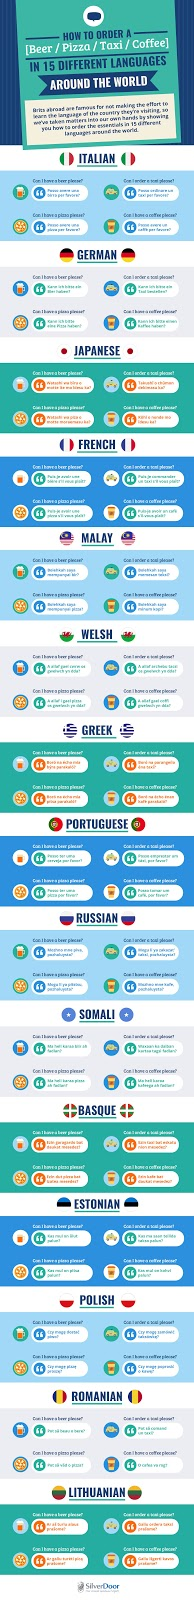 How To Order A Beer / Pizza / Taxi / Coffee In 15 Different Languages Around The World #Infographic